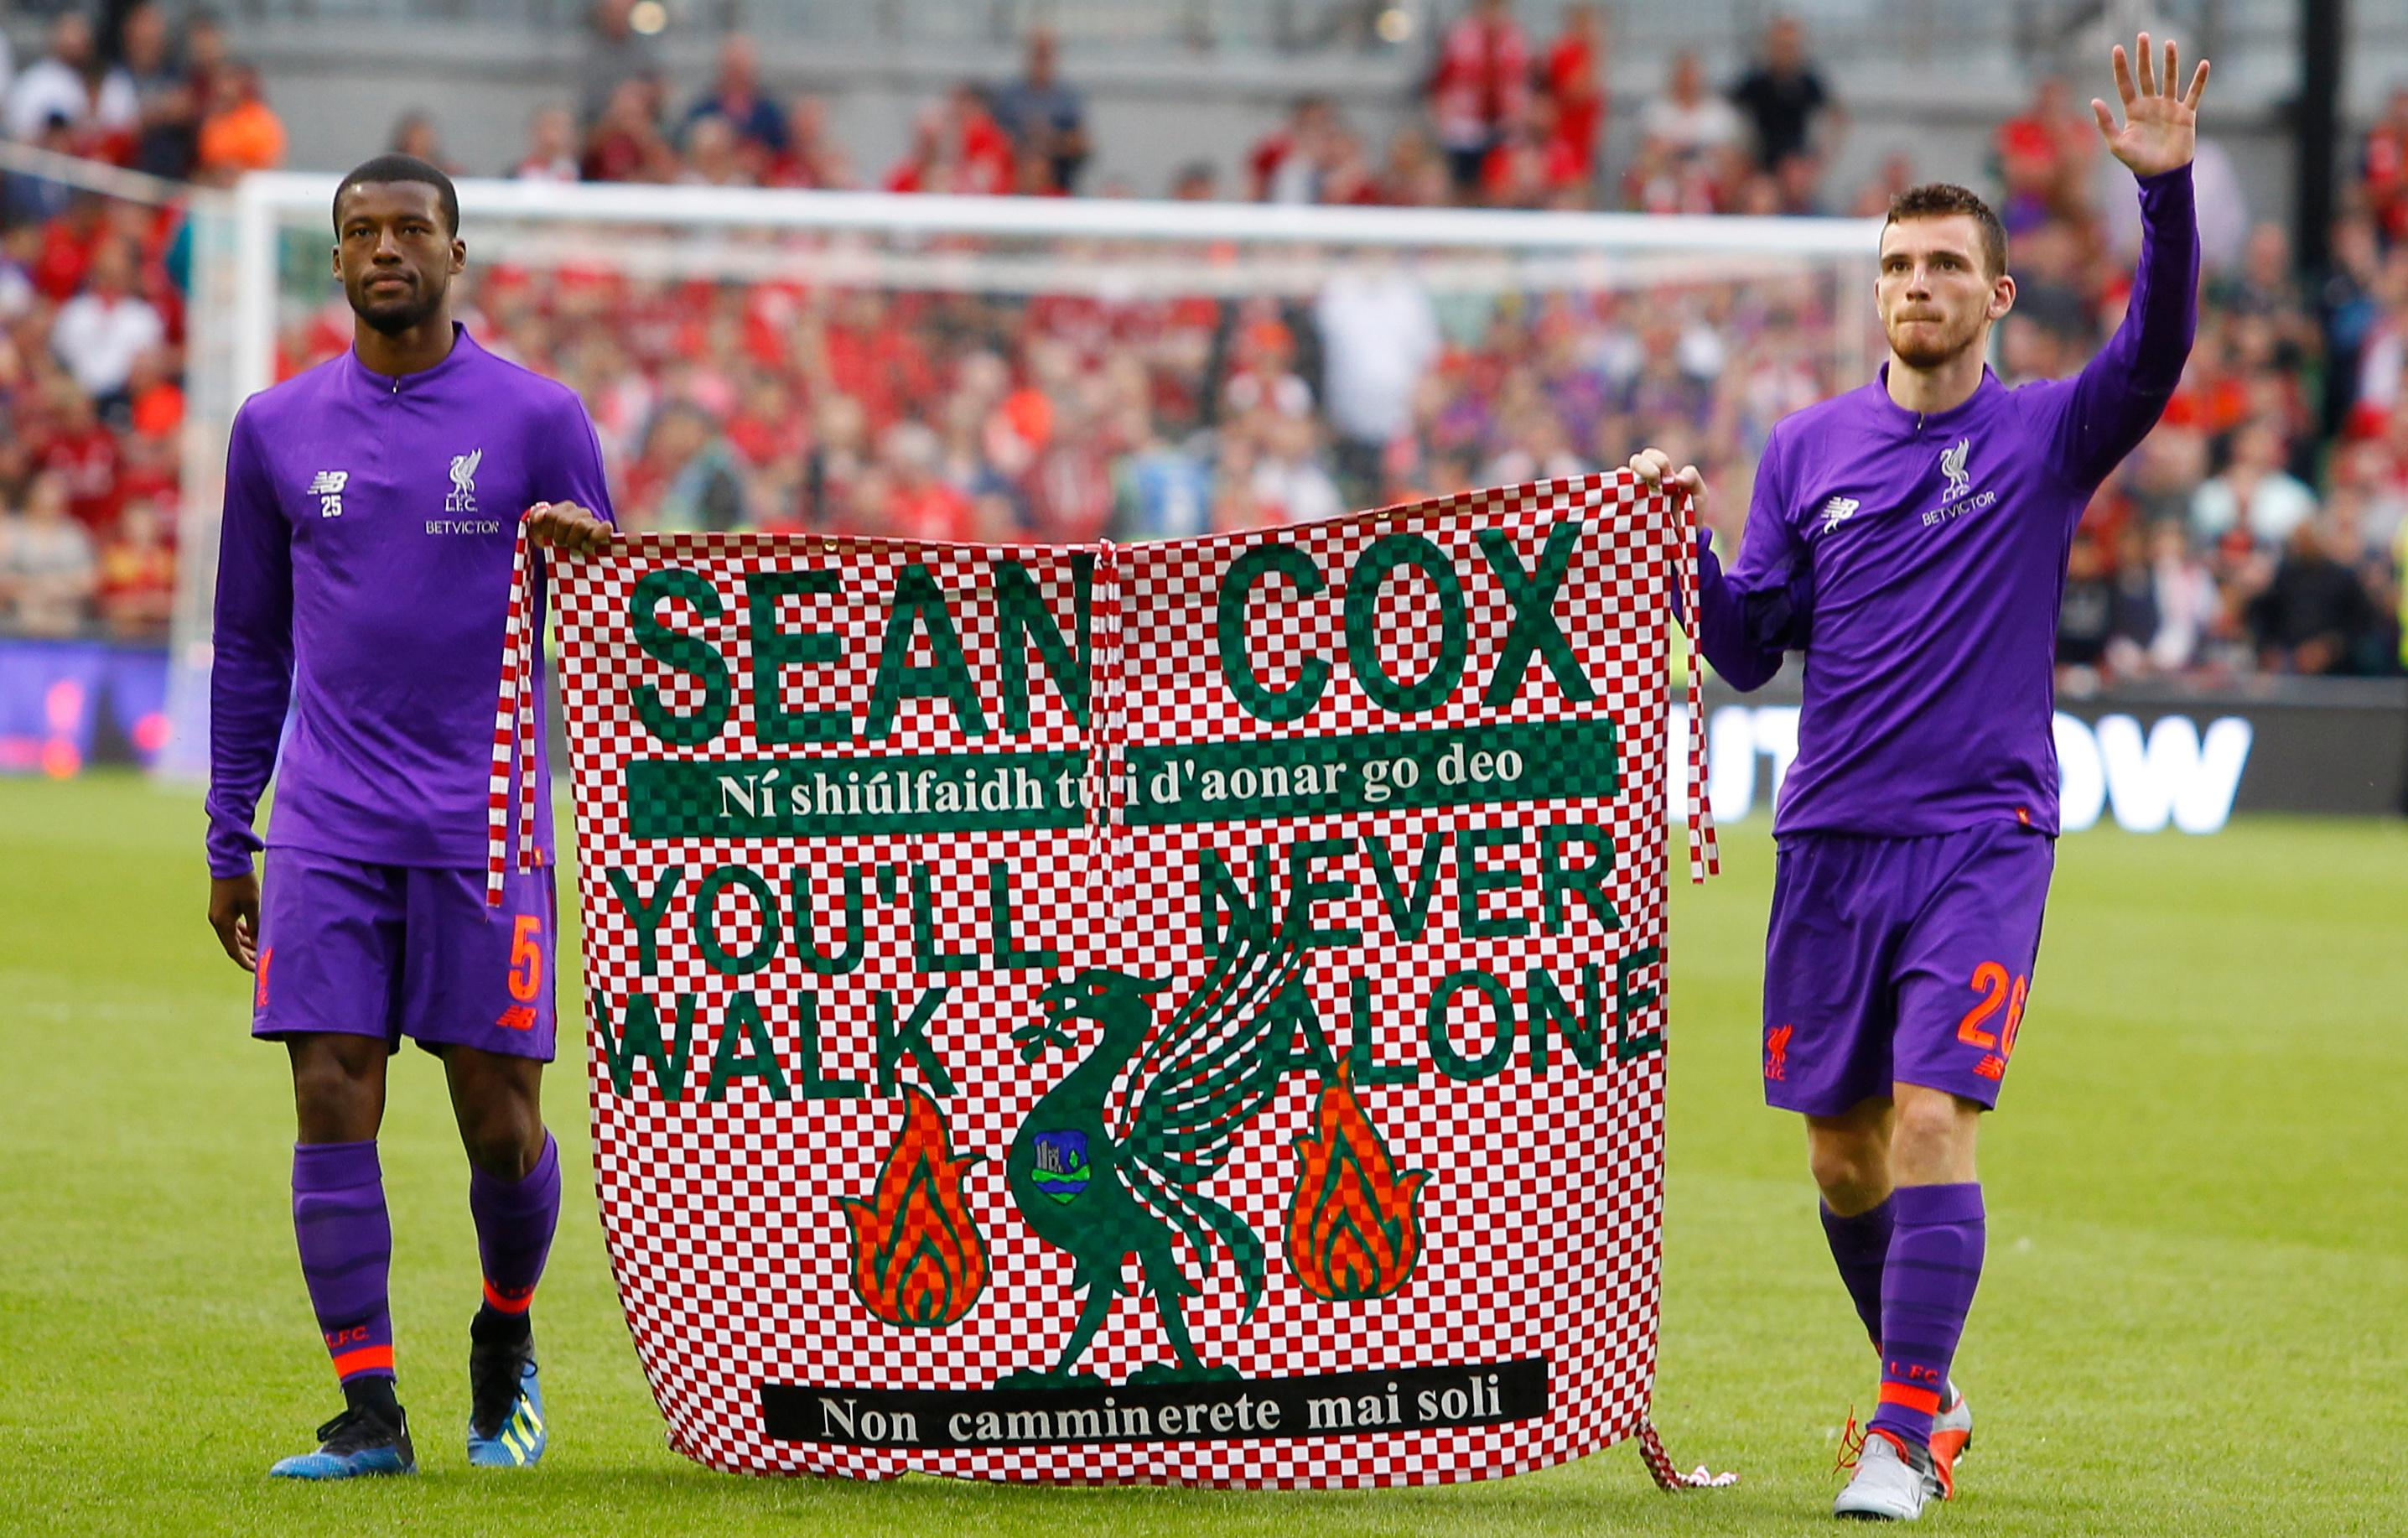 Sean Cox's brother criticises Manchester City over celebratory flight song